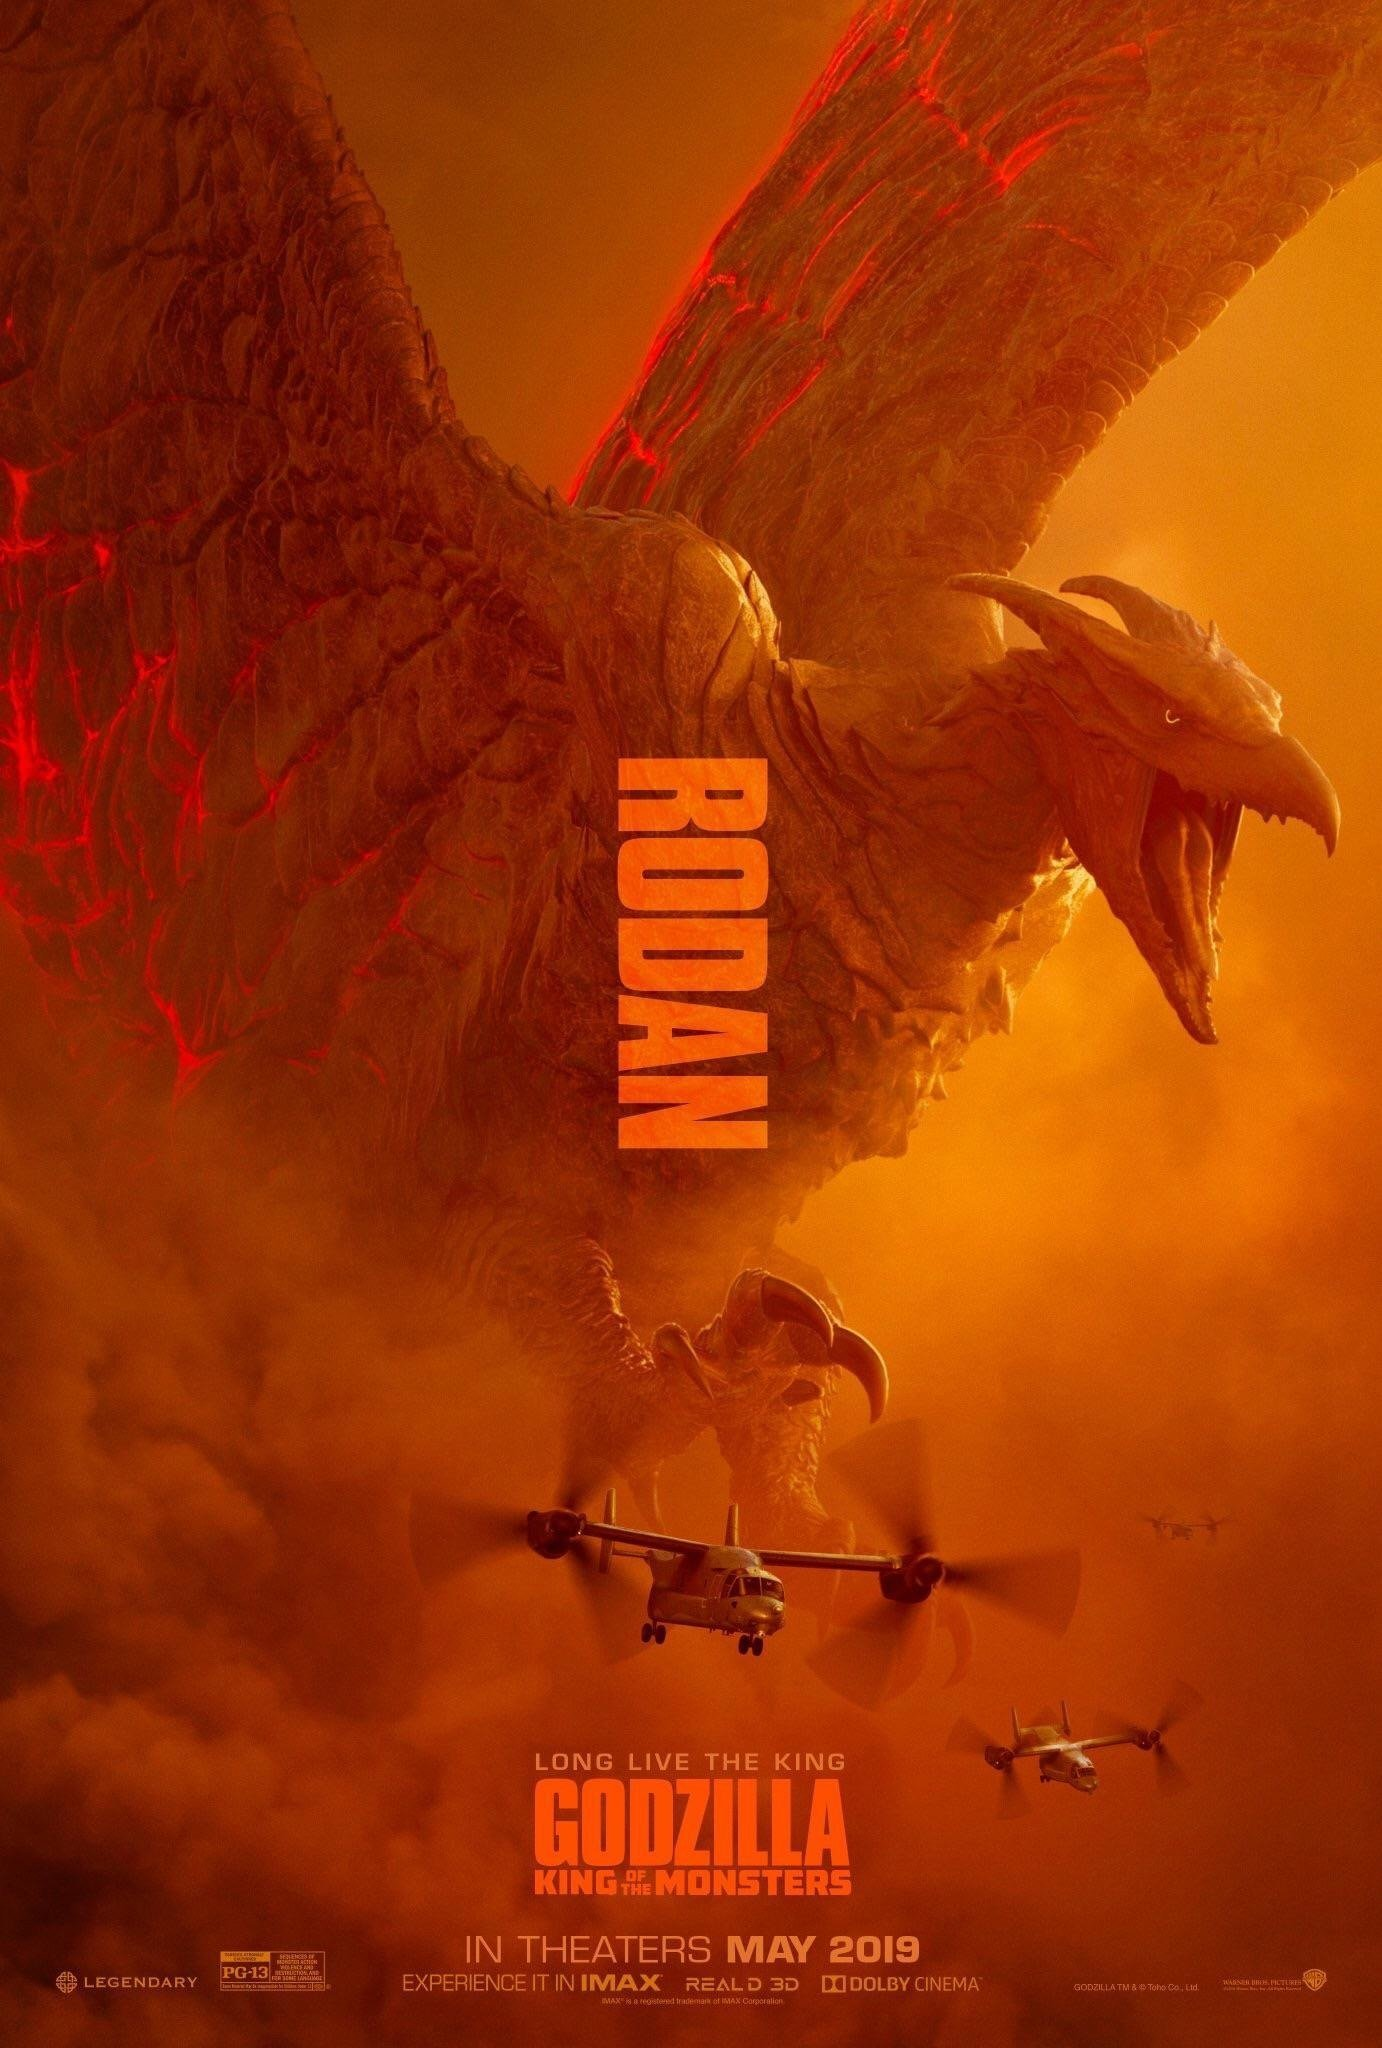 Poster du film Godzilla: King of the Monsters avec le Kaijū Rodan